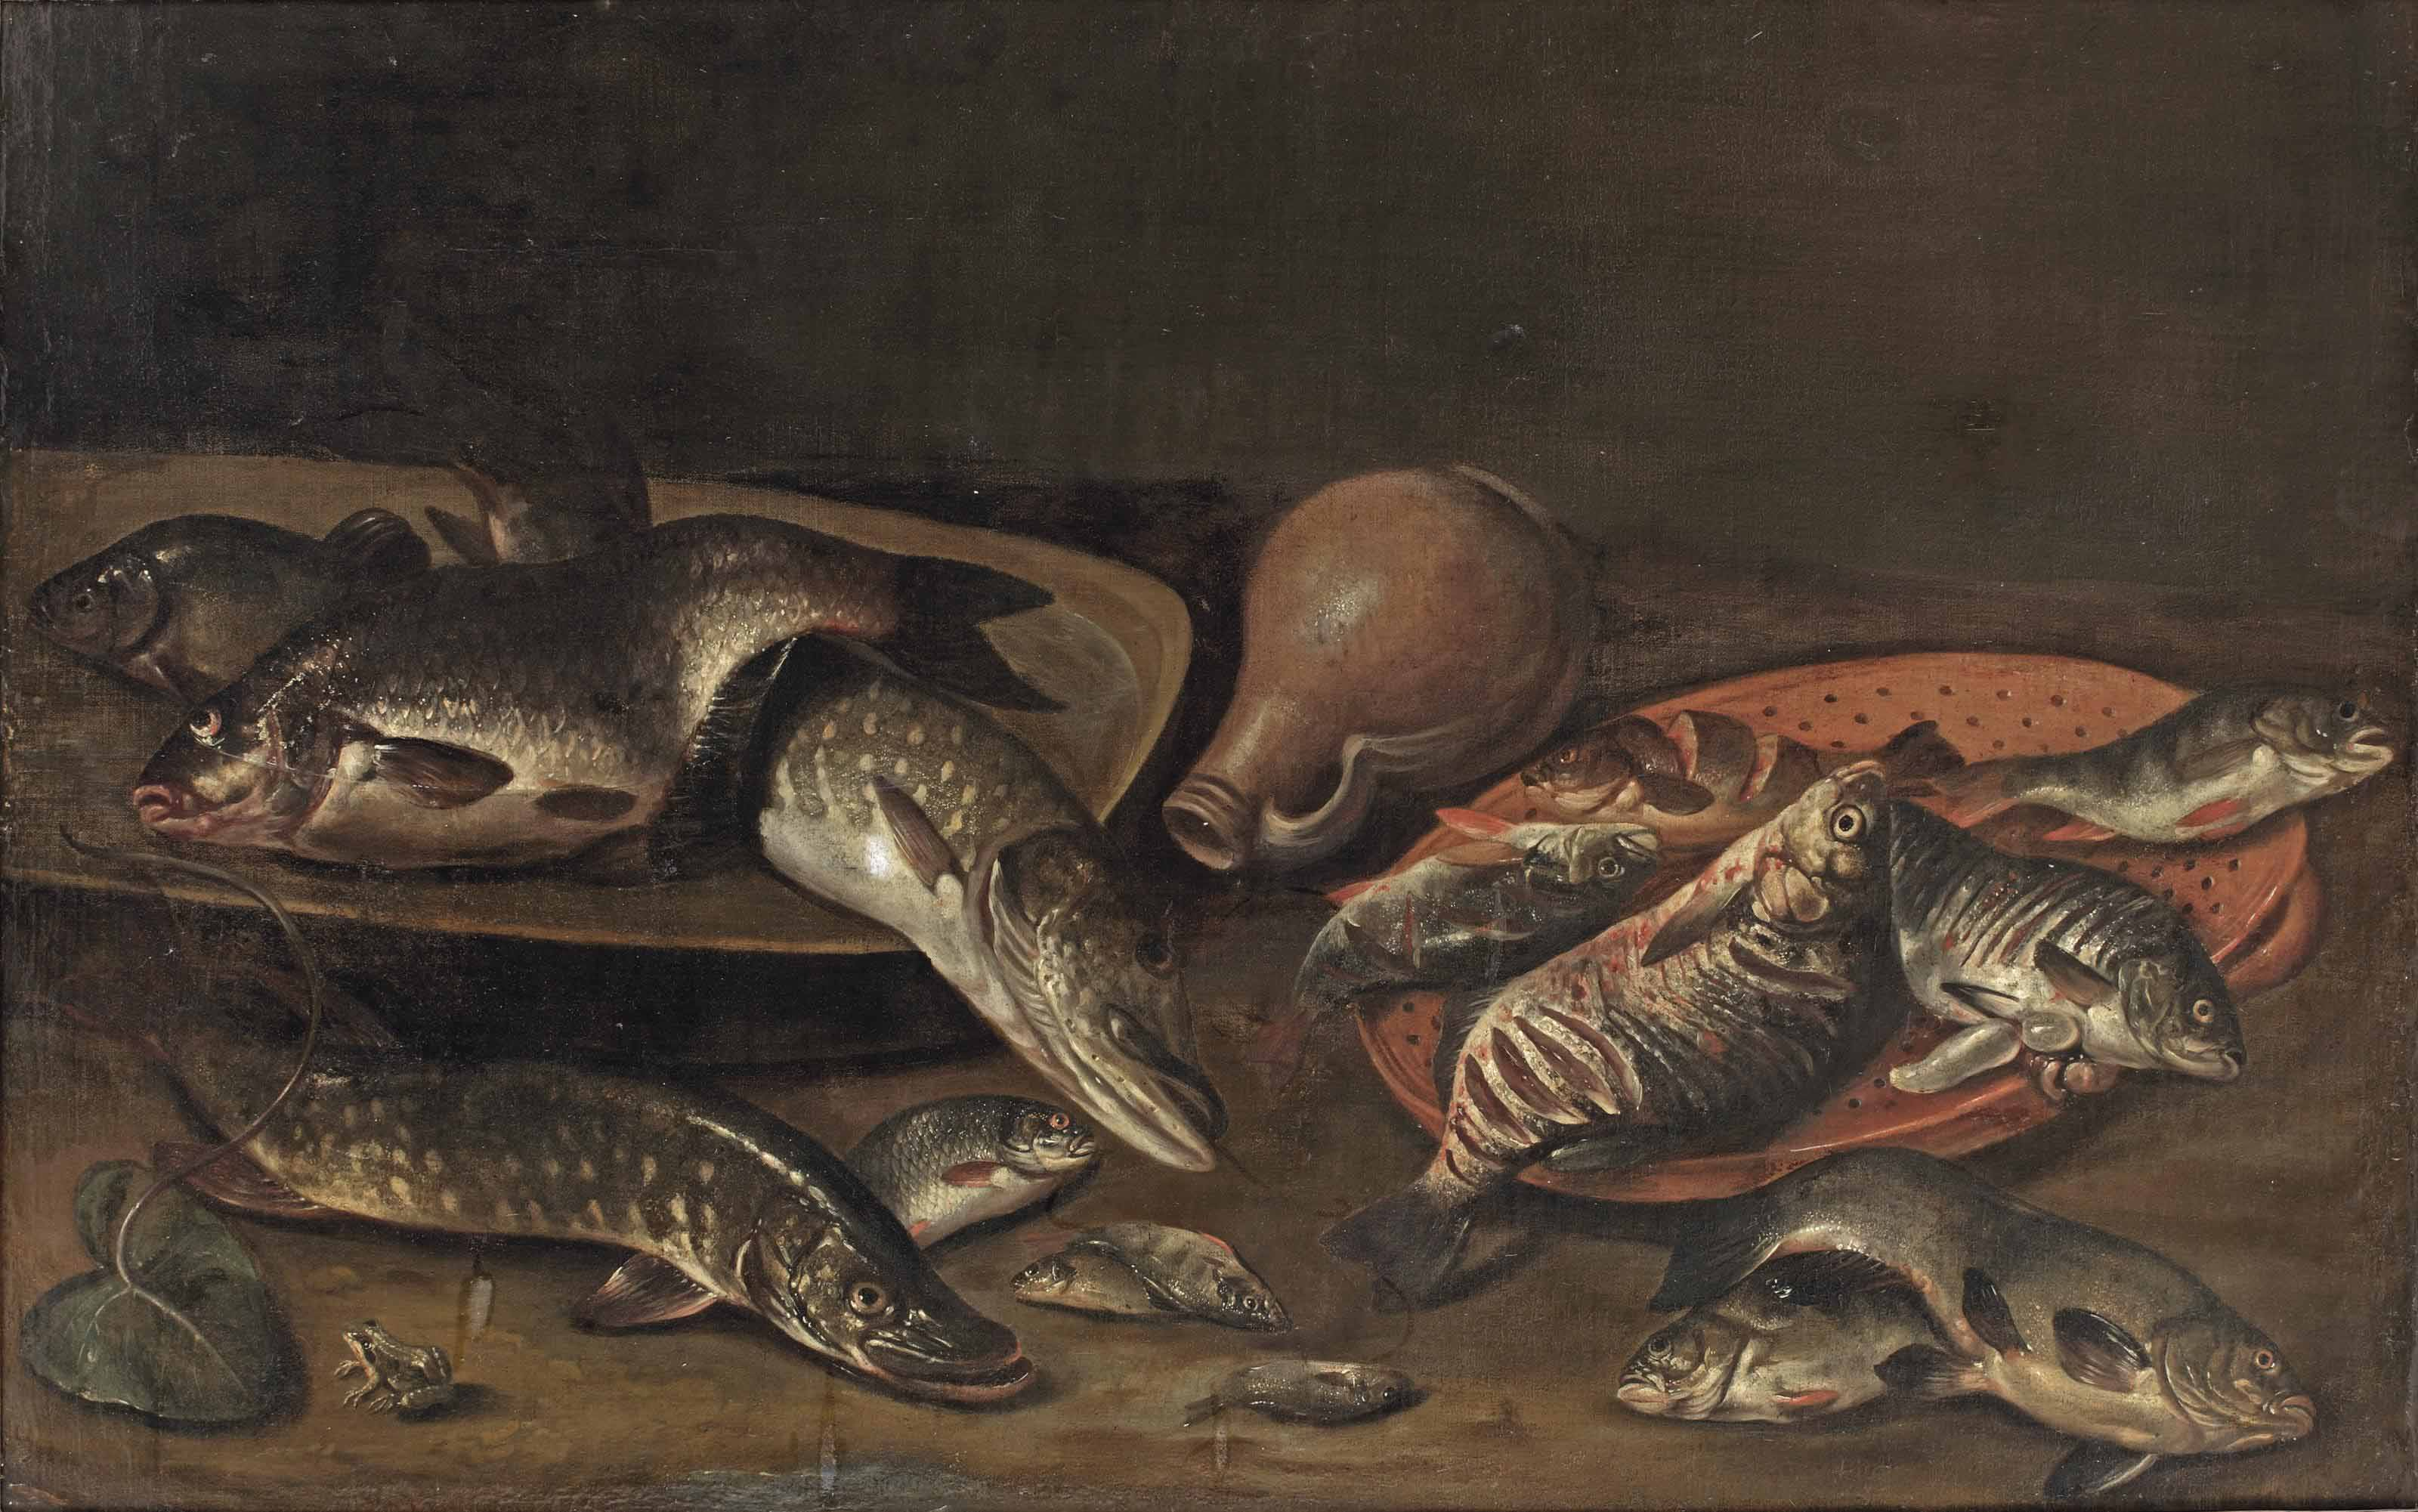 Various fish on platters, an earthenware jug, and a small frog in the left foreground